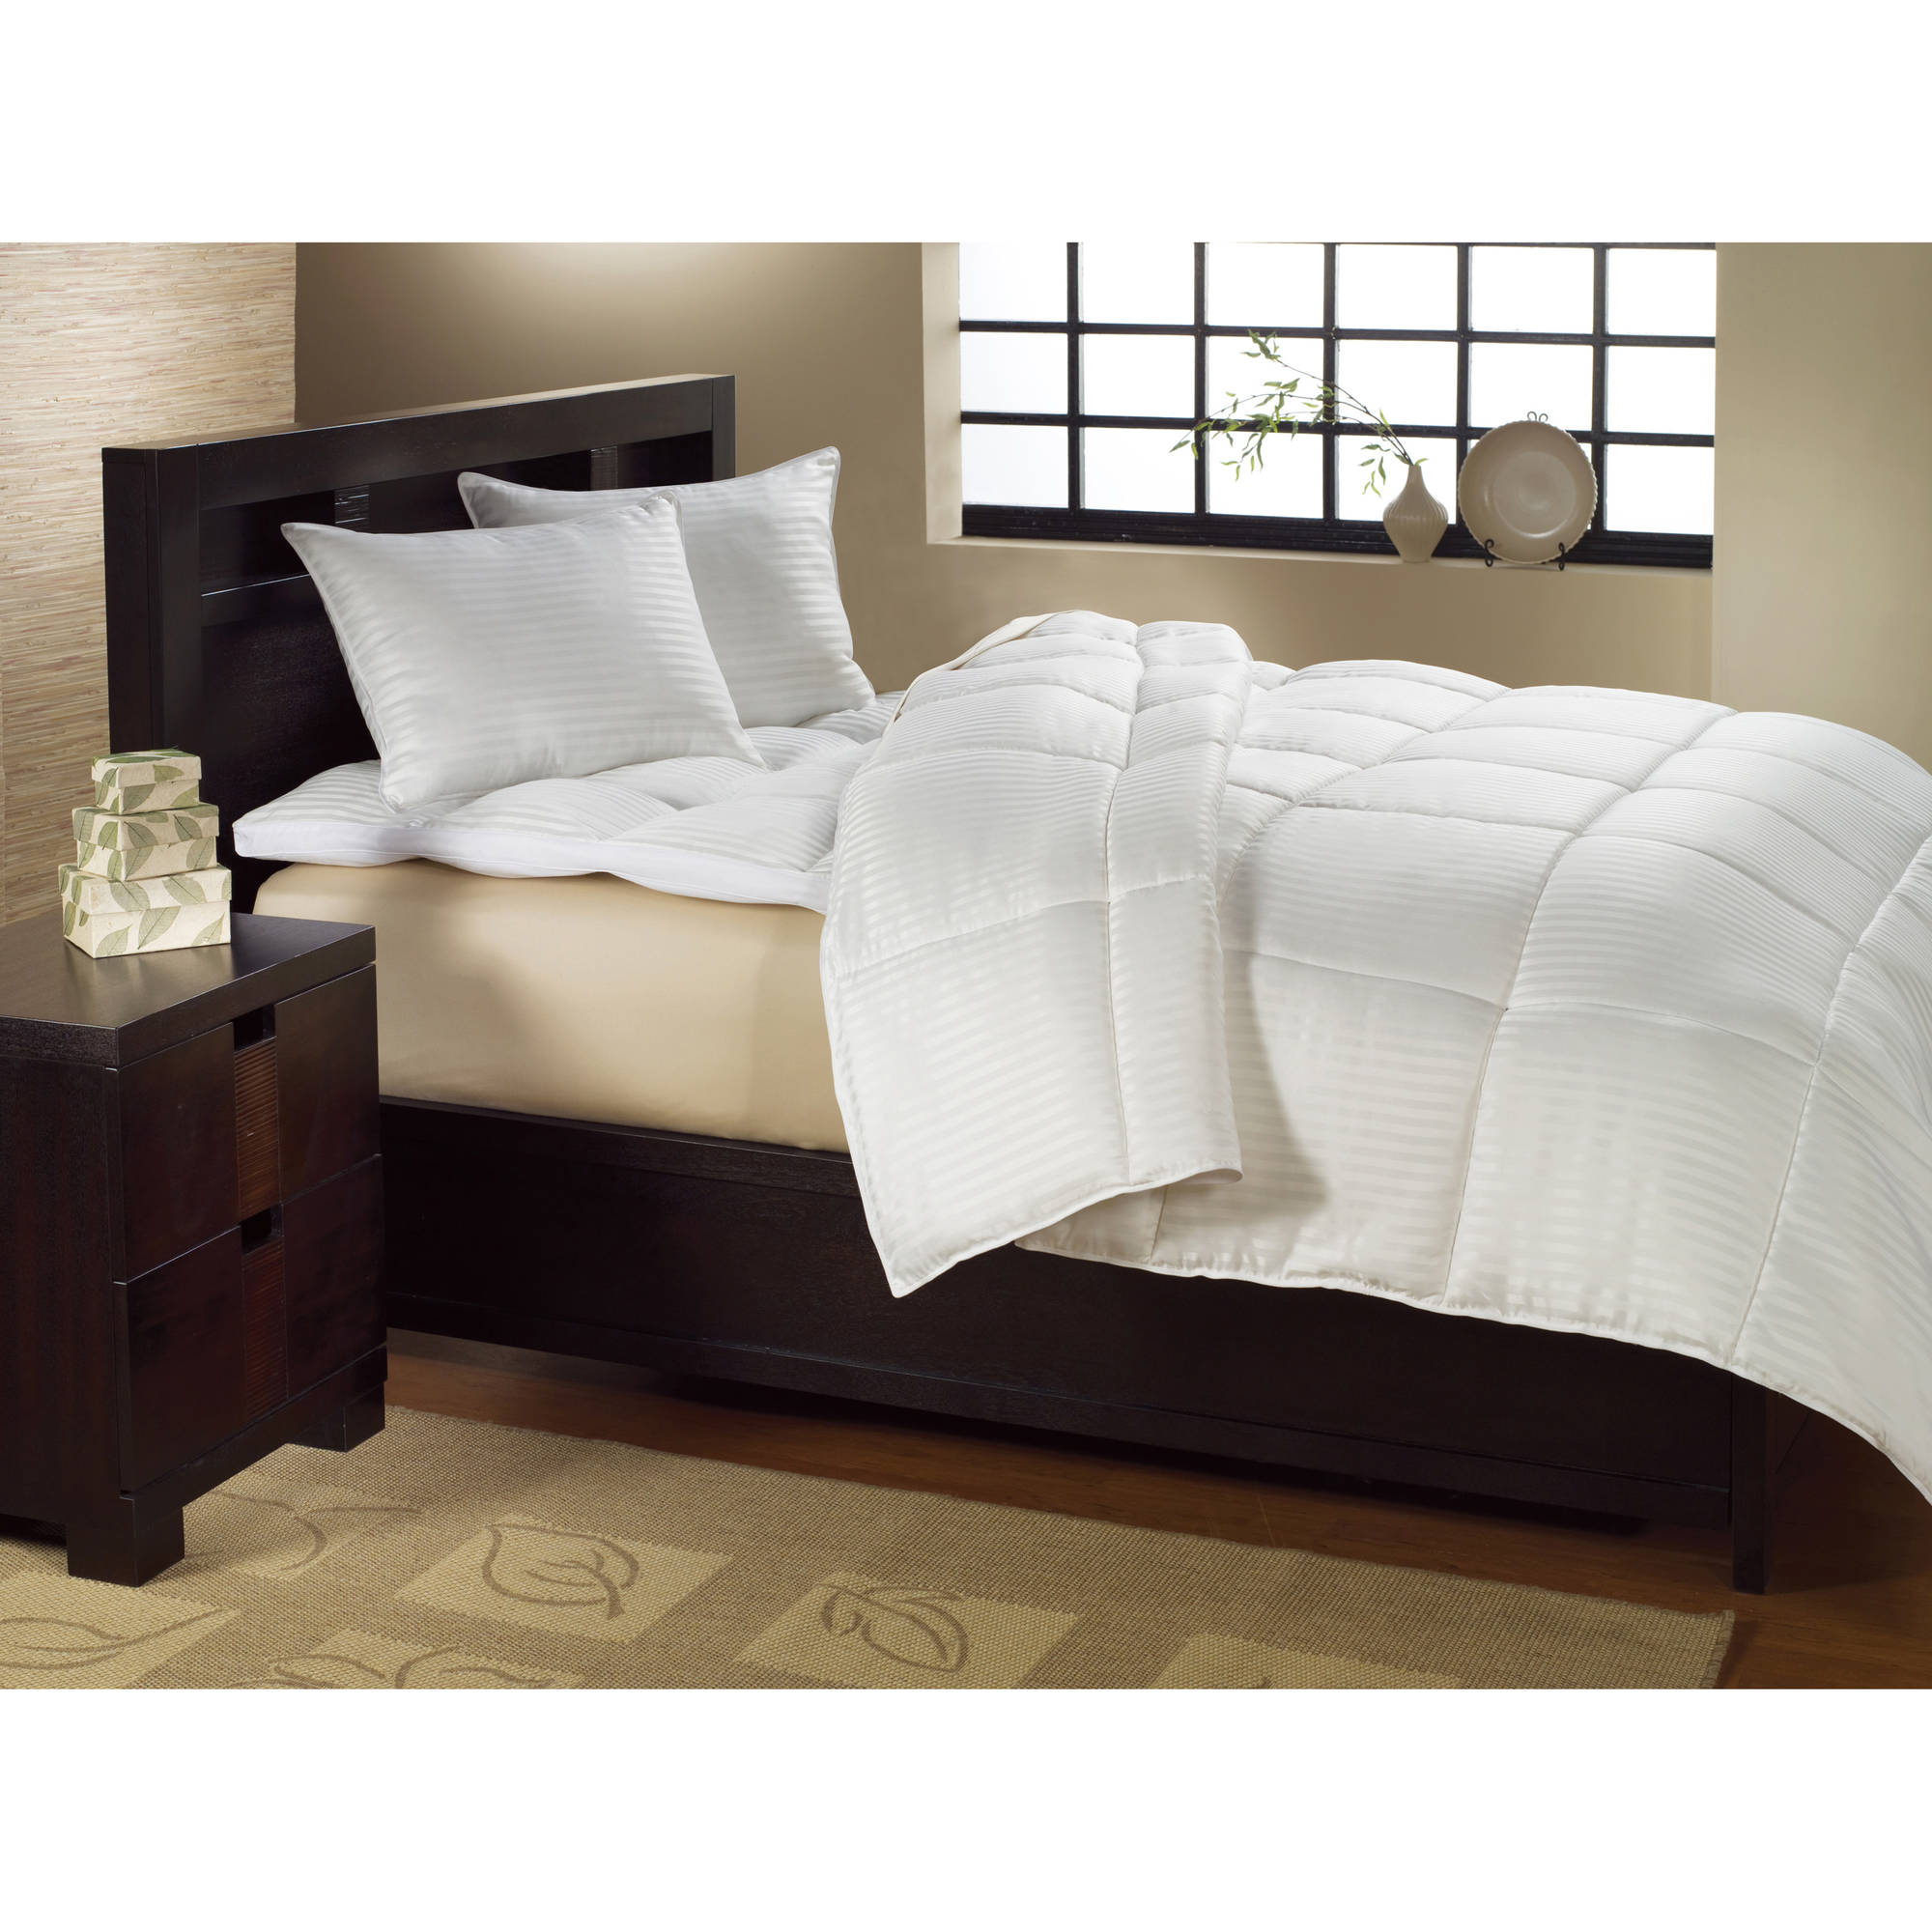 better homes and gardens down fusion year round warmth comforter